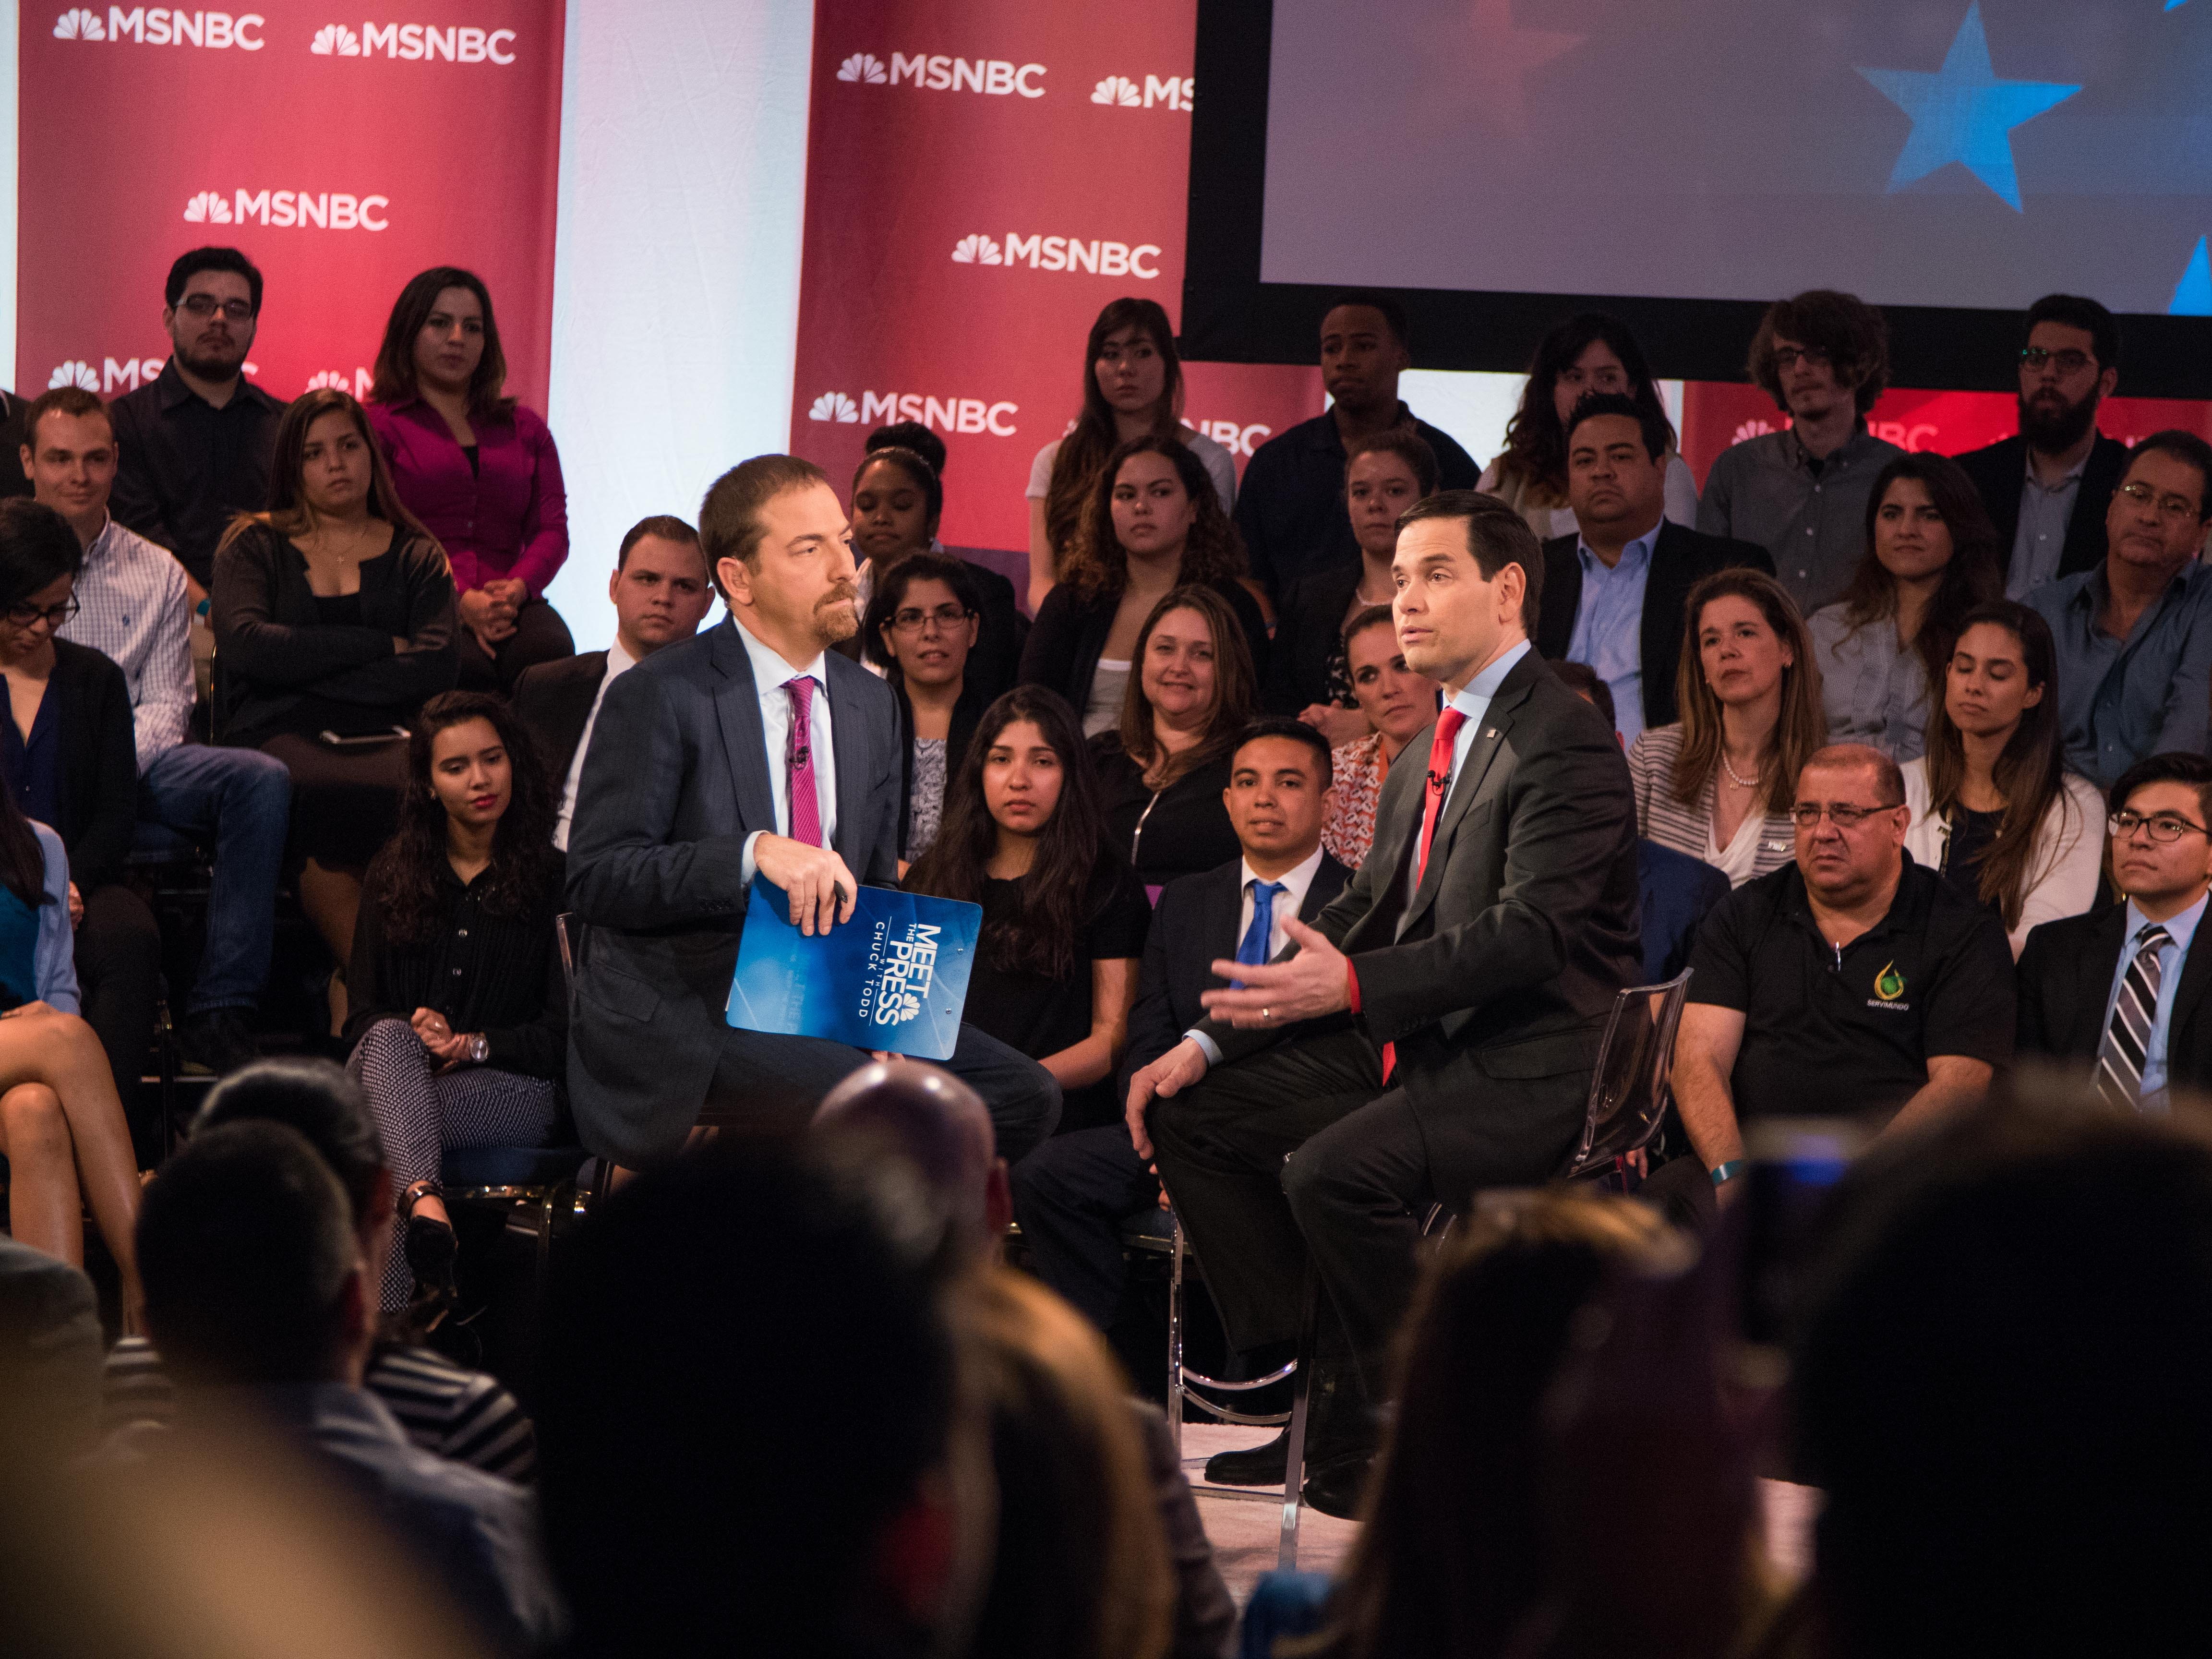 Marco Rubio fields questions from FIU community at MSNBC town hall